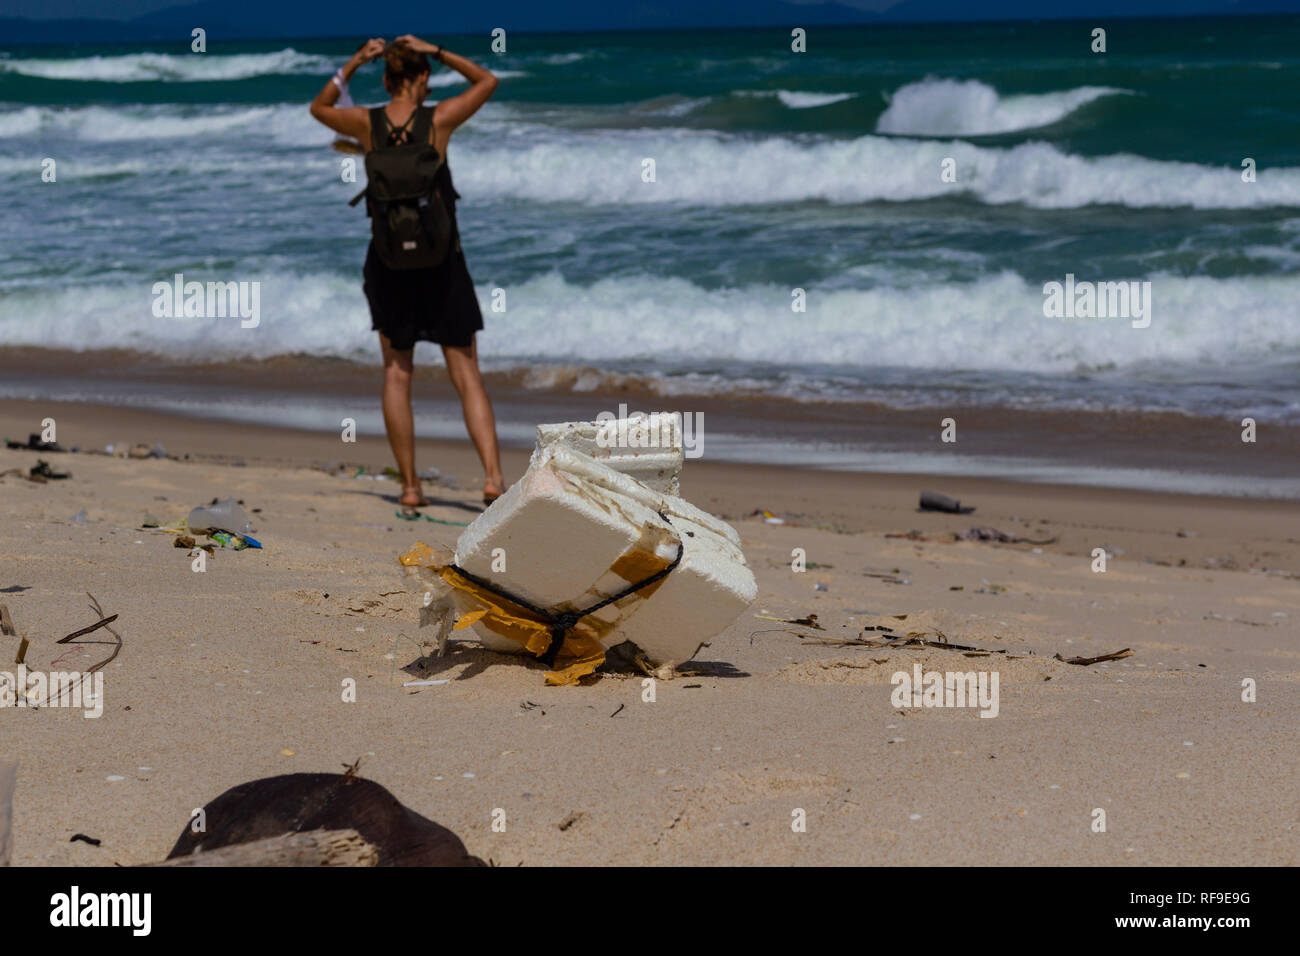 Beach pollution, plastic and waste from ocean on the beach. tourist on the polluted beach. - Stock Image